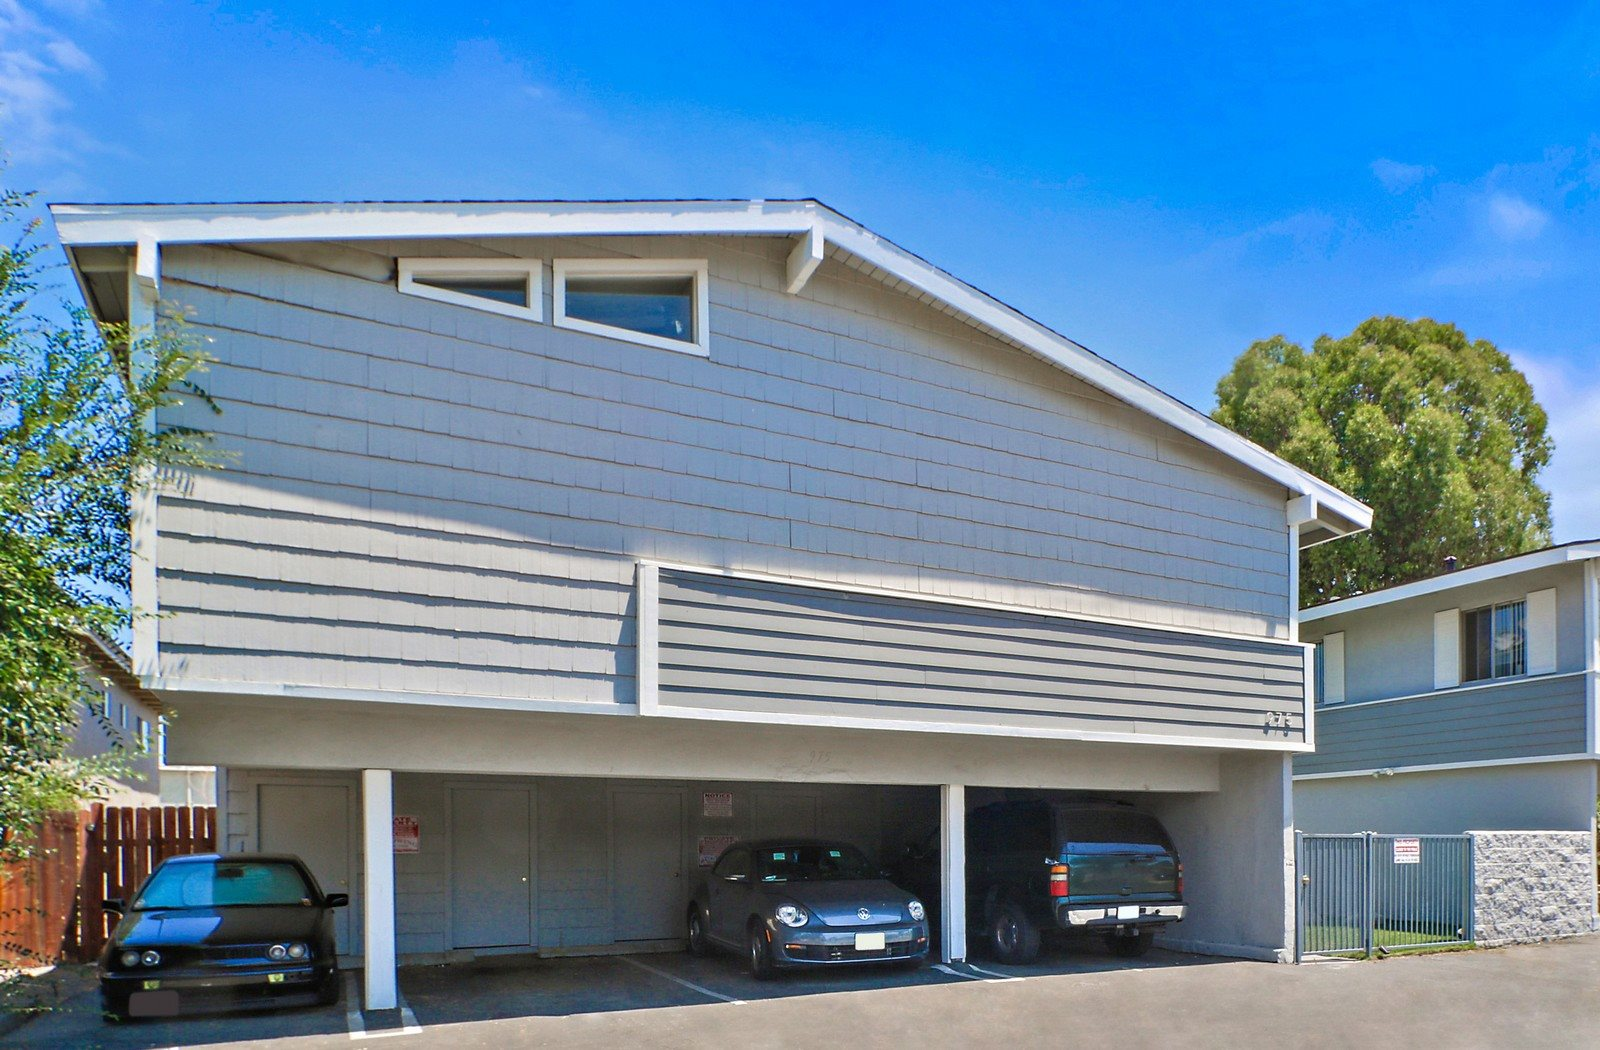 Simi Valley homepagegallery 4